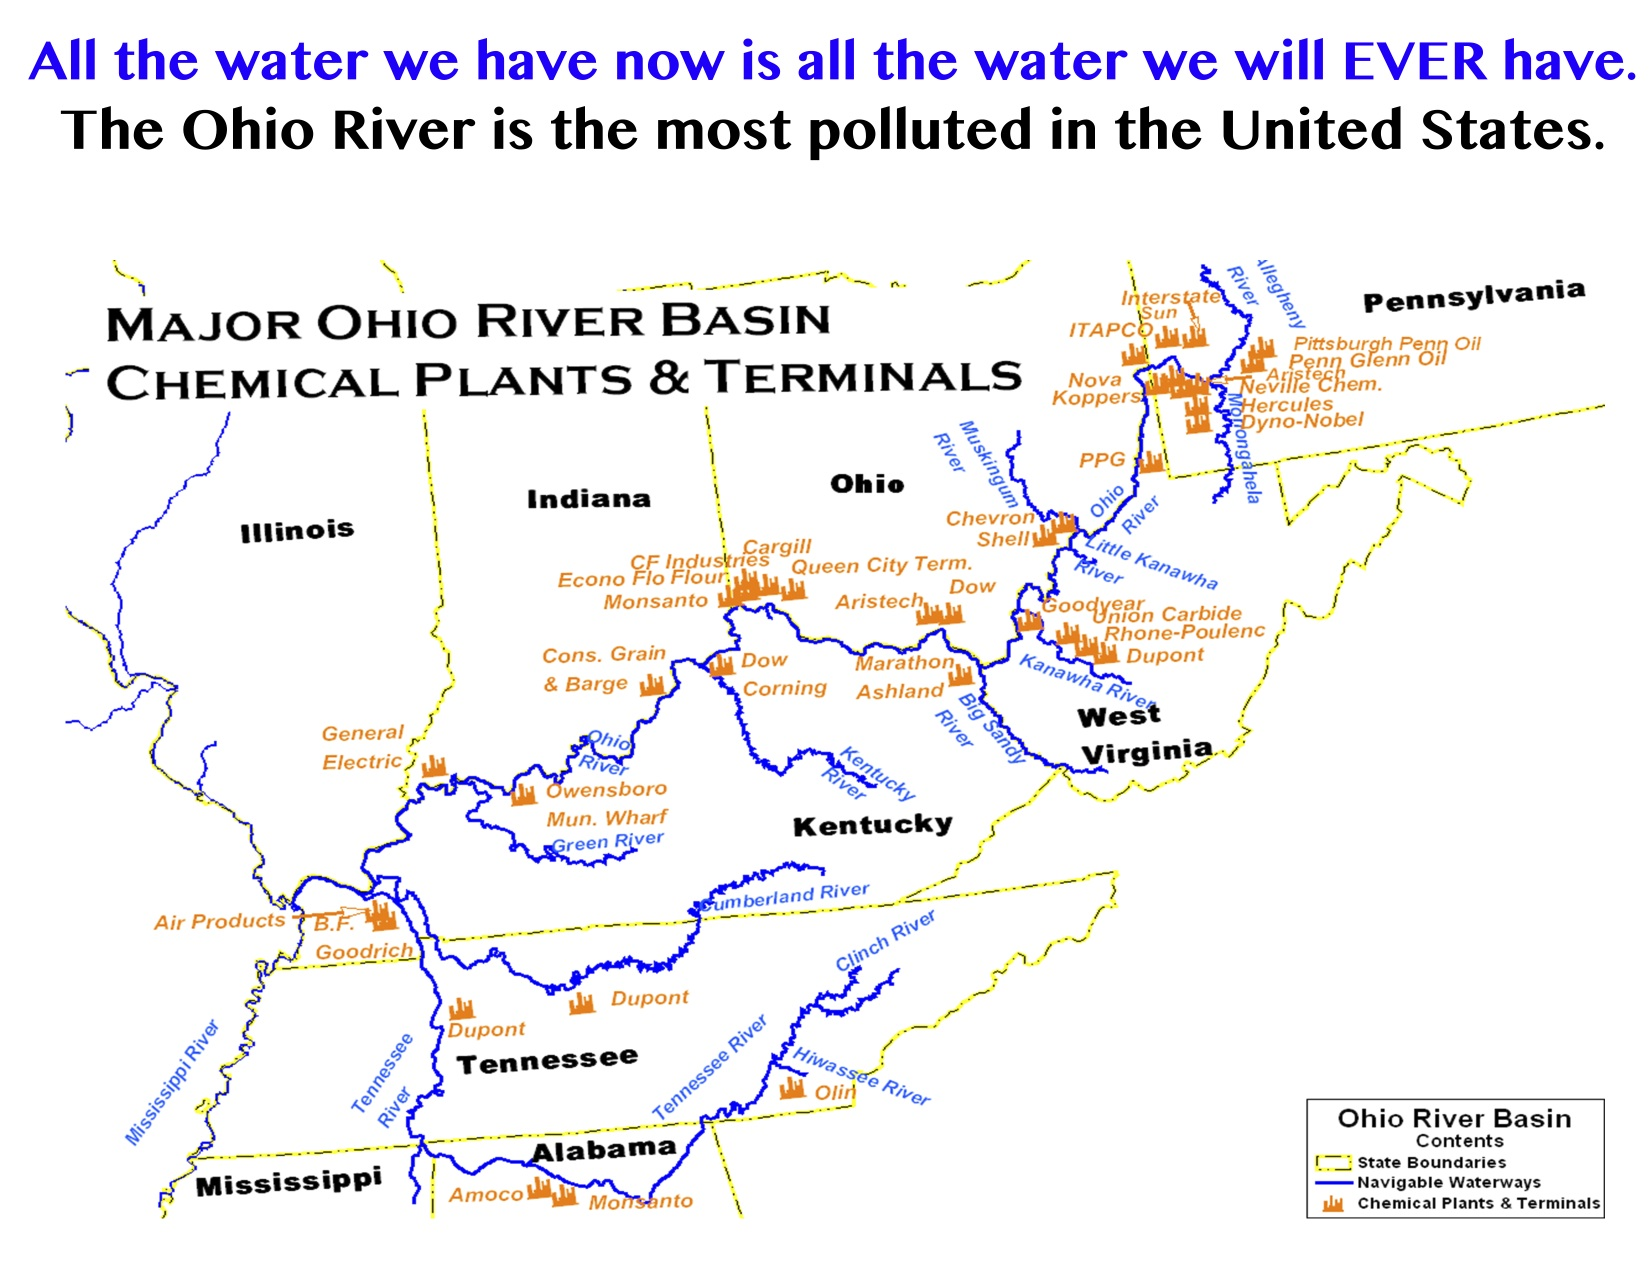 Map of the Ohio River